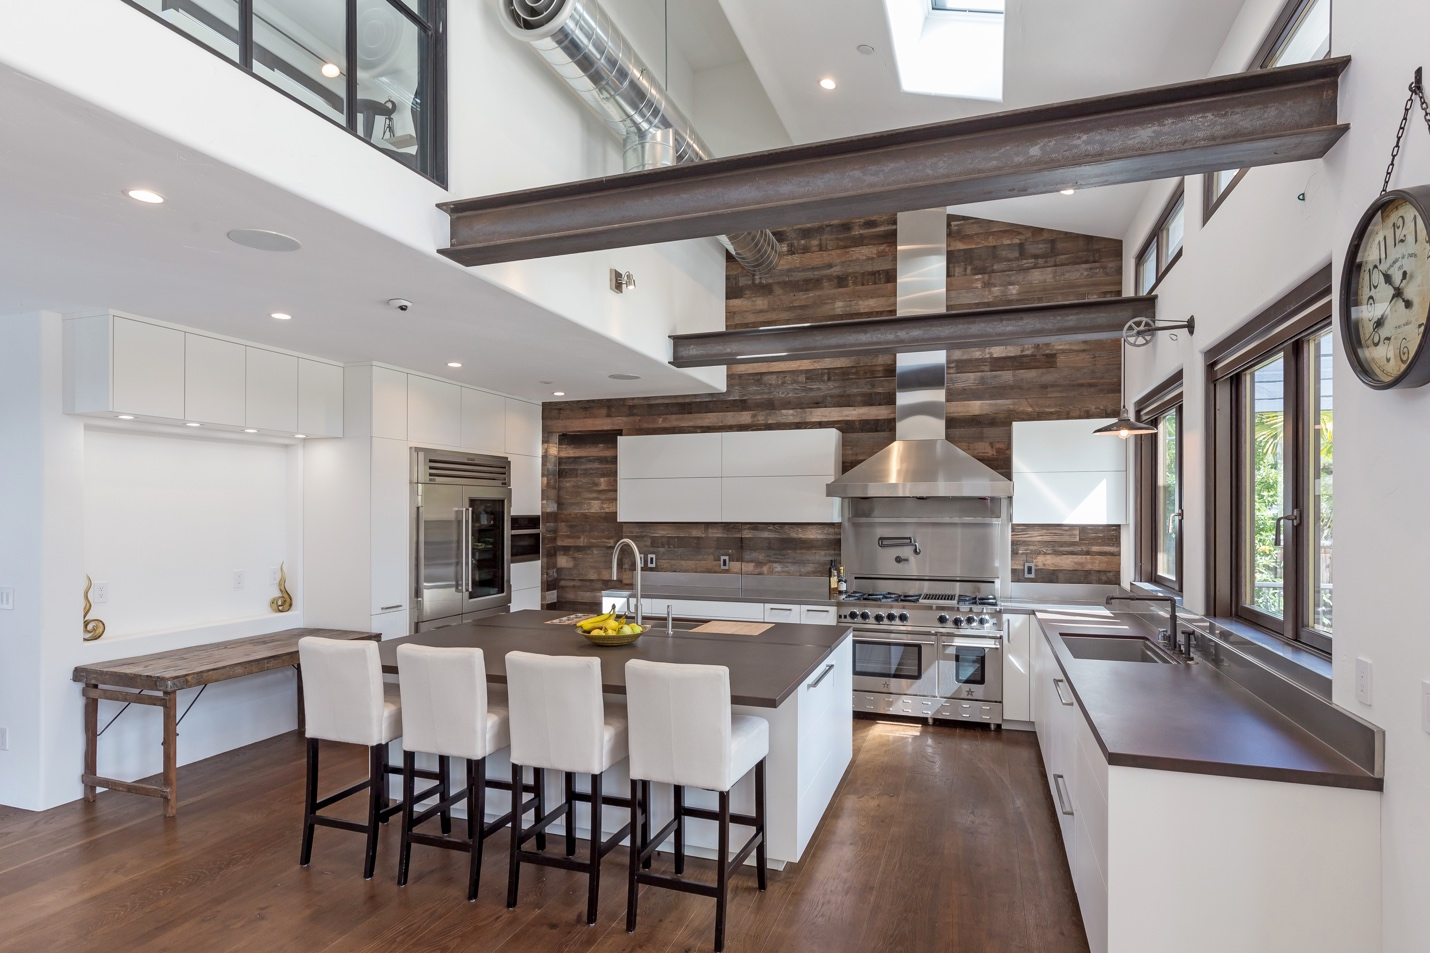 Best kitchen design, Interior Work, Los Altos